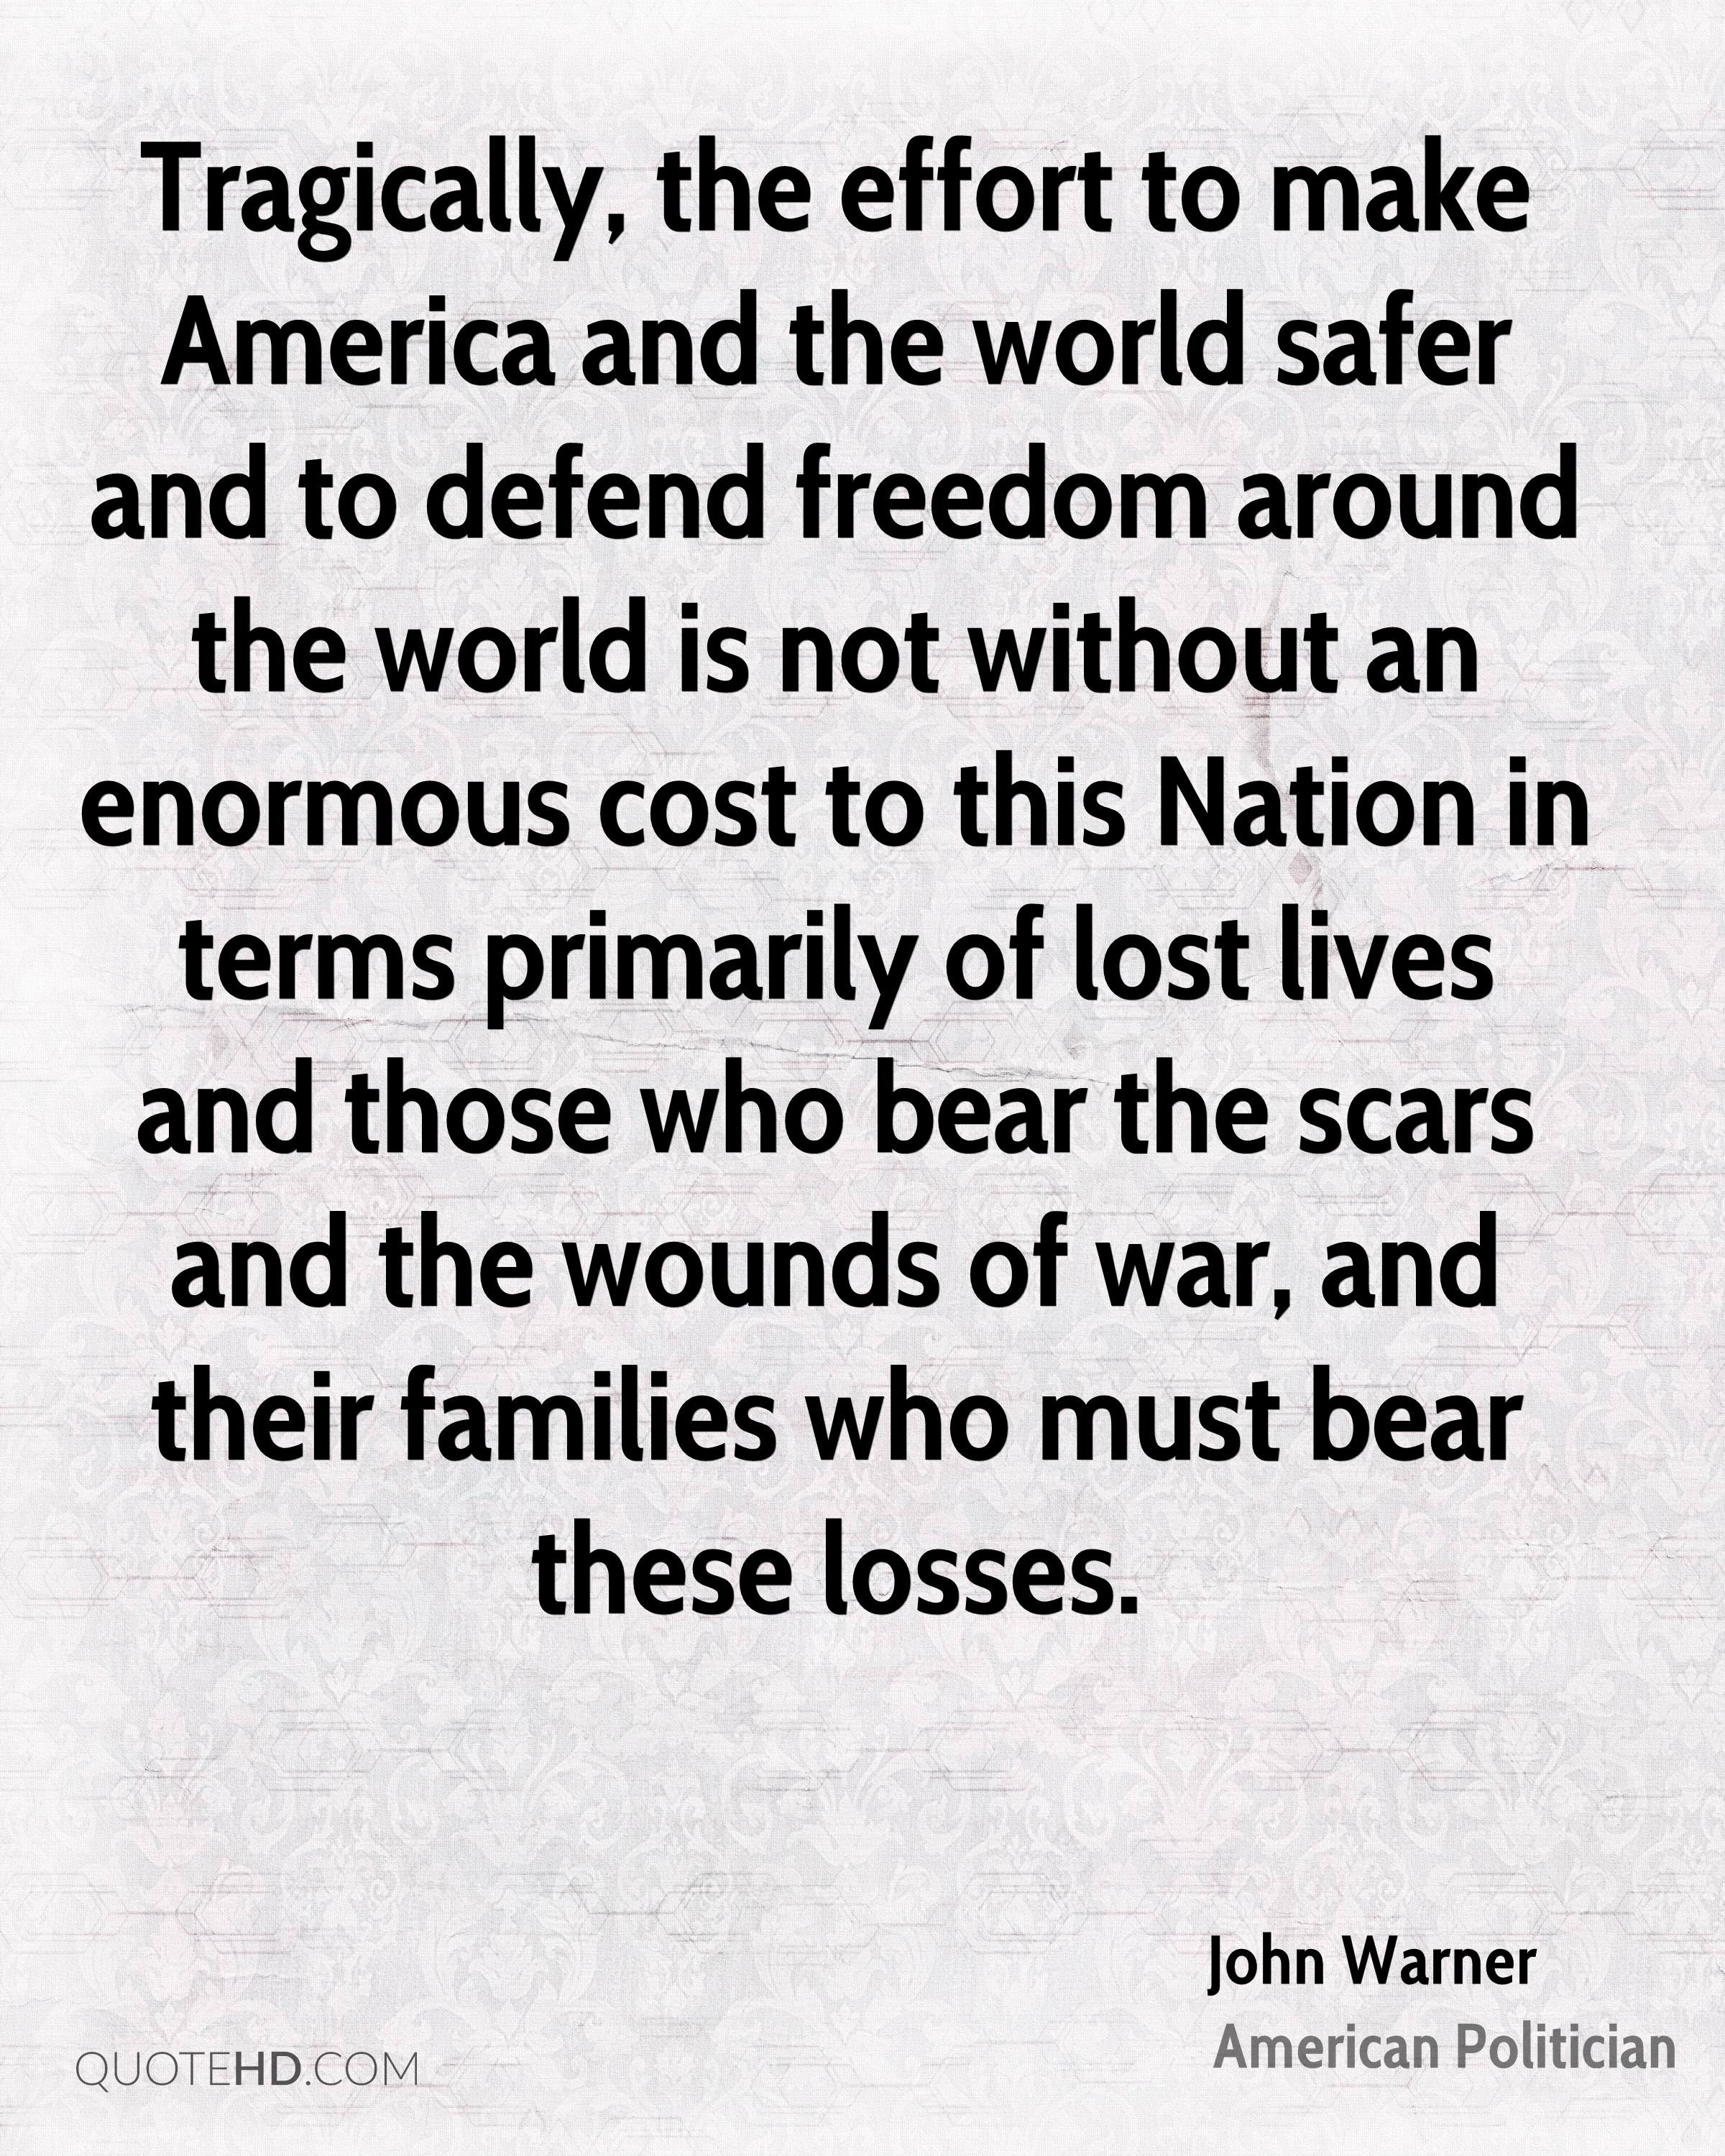 Tragically, the effort to make America and the world safer and to defend freedom around the world is not without an enormous cost to this Nation in terms primarily of lost lives and those who bear the scars and the wounds of war, and their families who must bear these losses.